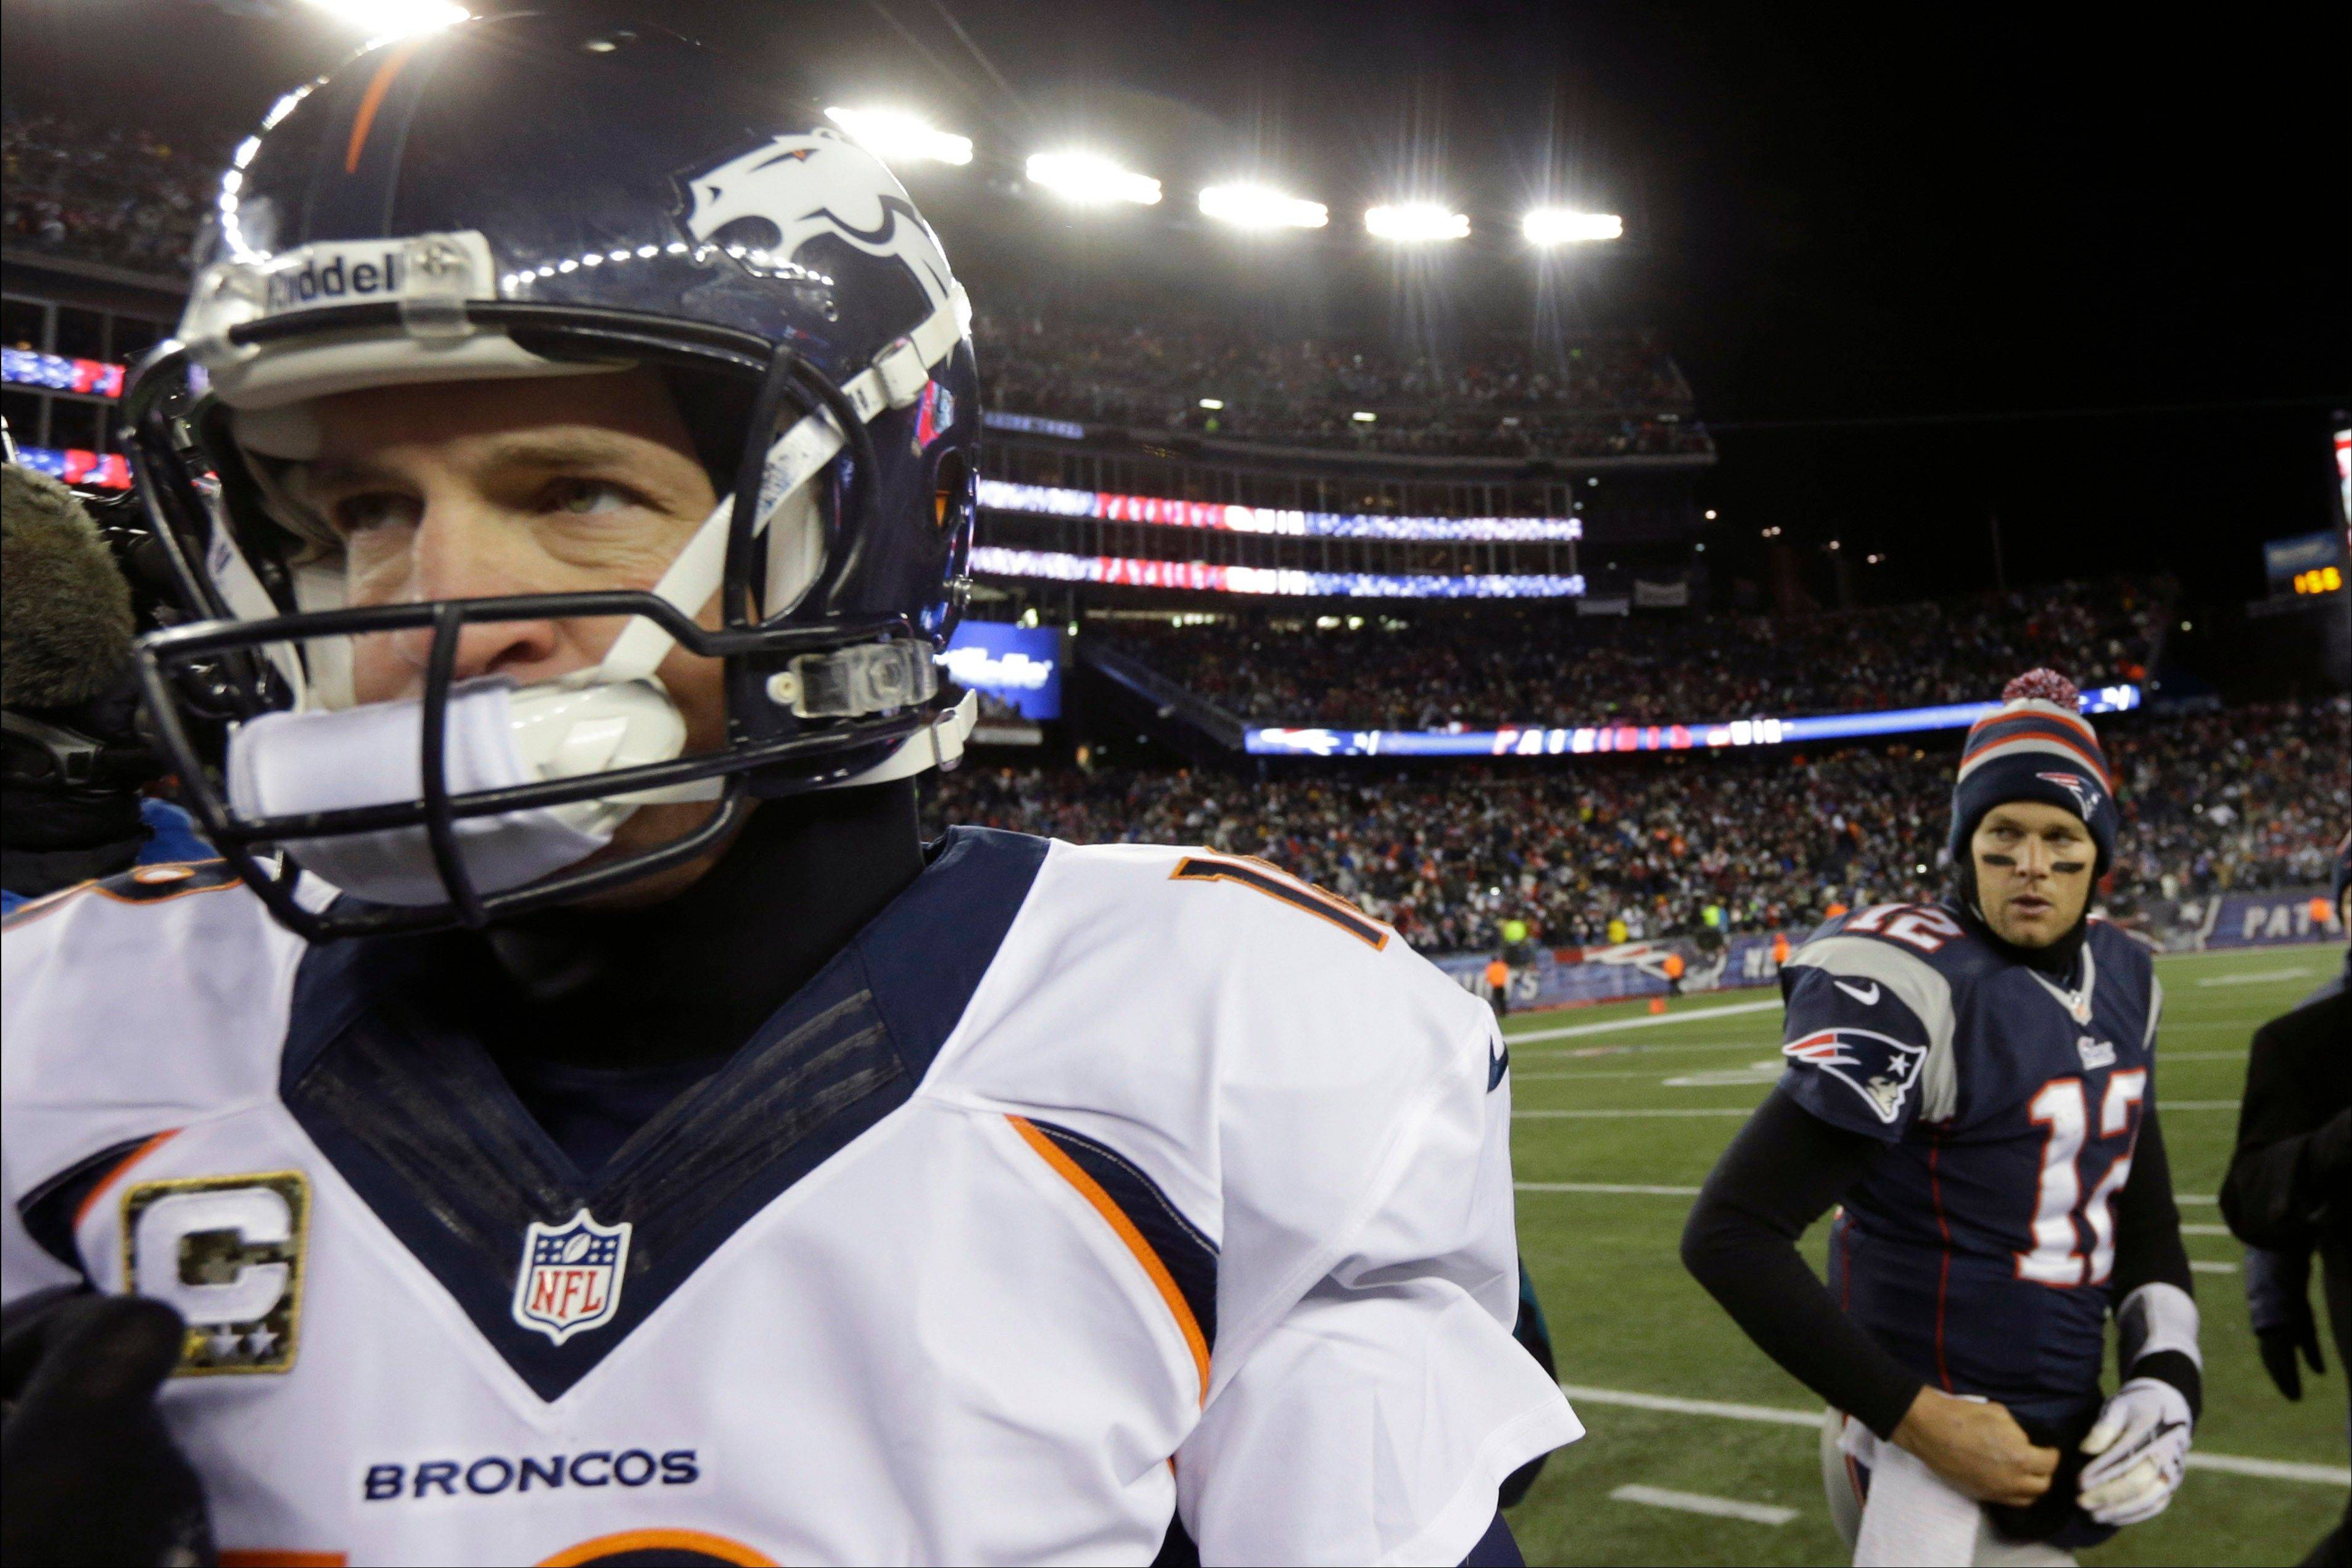 Denver Broncos quarterback Peyton Manning, left, walks away from New England Patriots quarterback Tom Brady after an NFL football game early Monday, Nov. 25, 2013, in Foxborough, Mass. The Patriots won 34-31 in overtime.